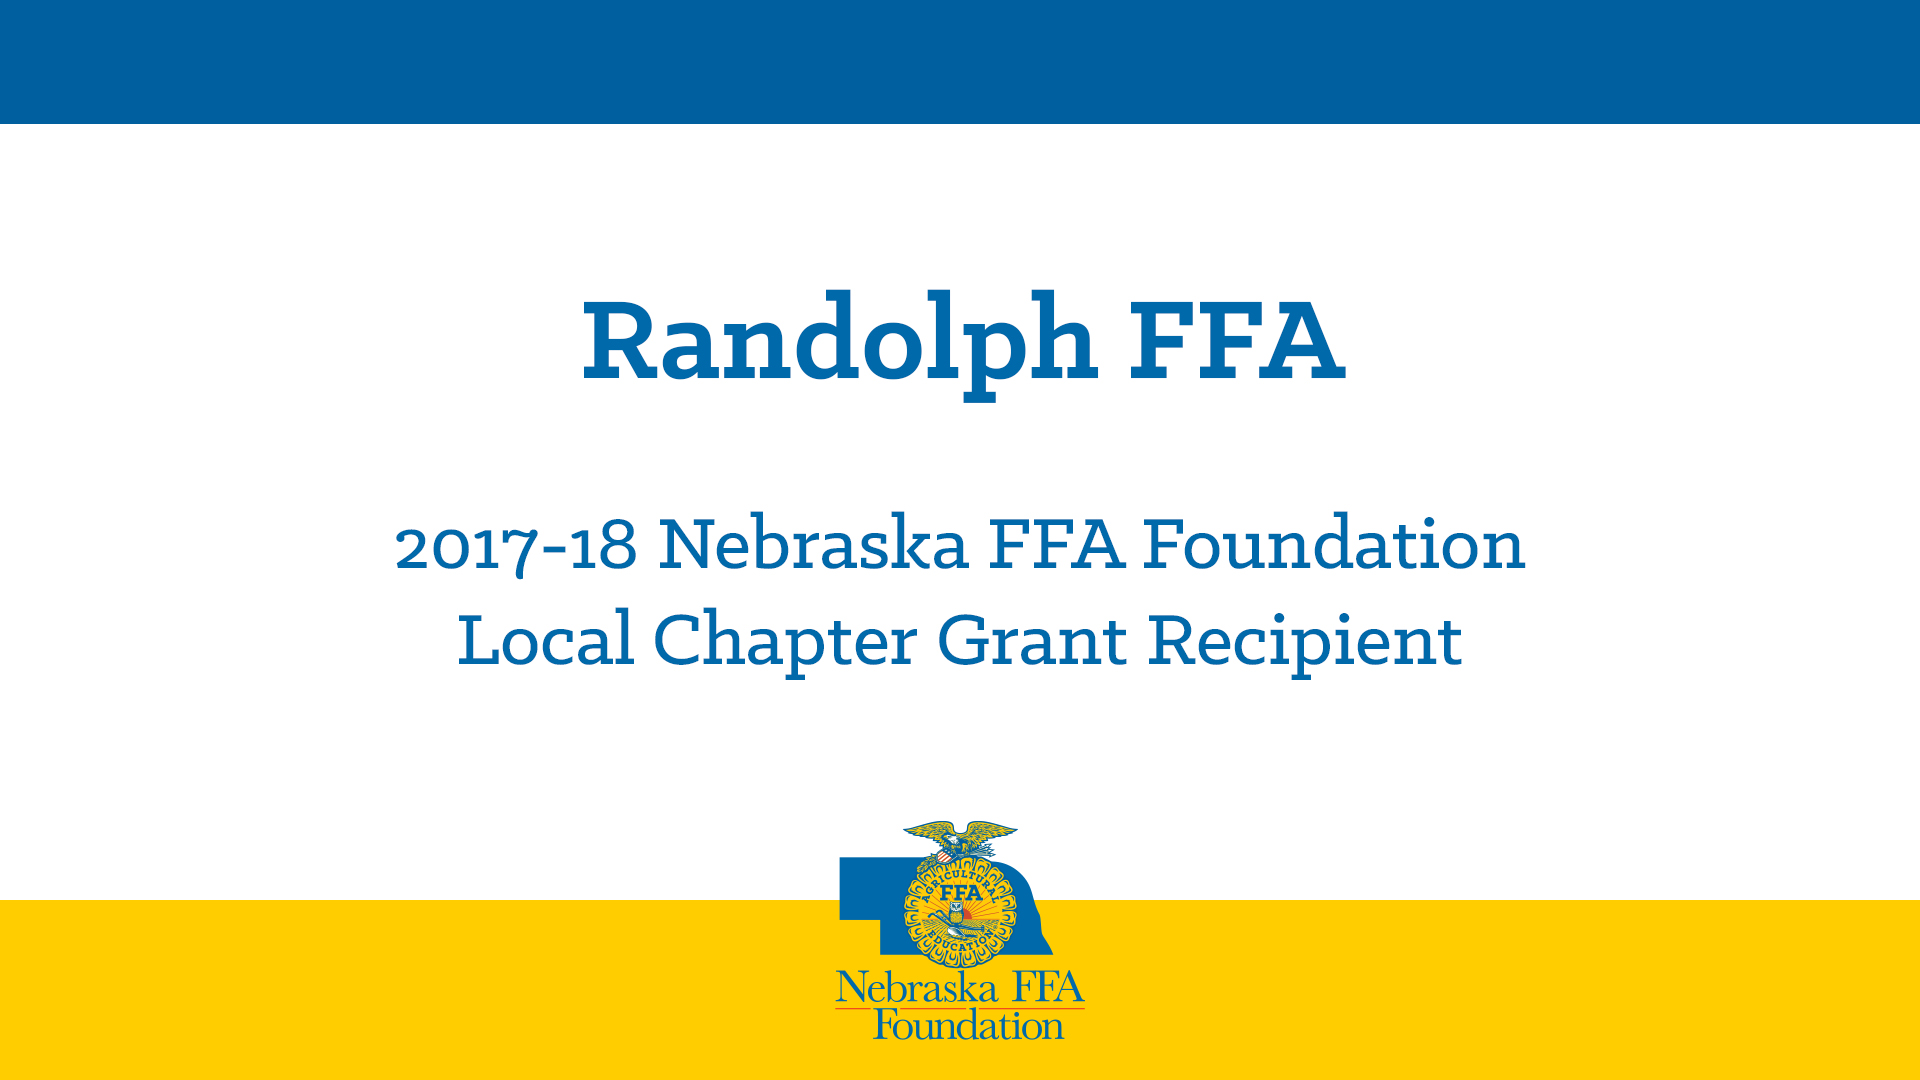 2017 Local Chapter Grant Recipient: Randolph